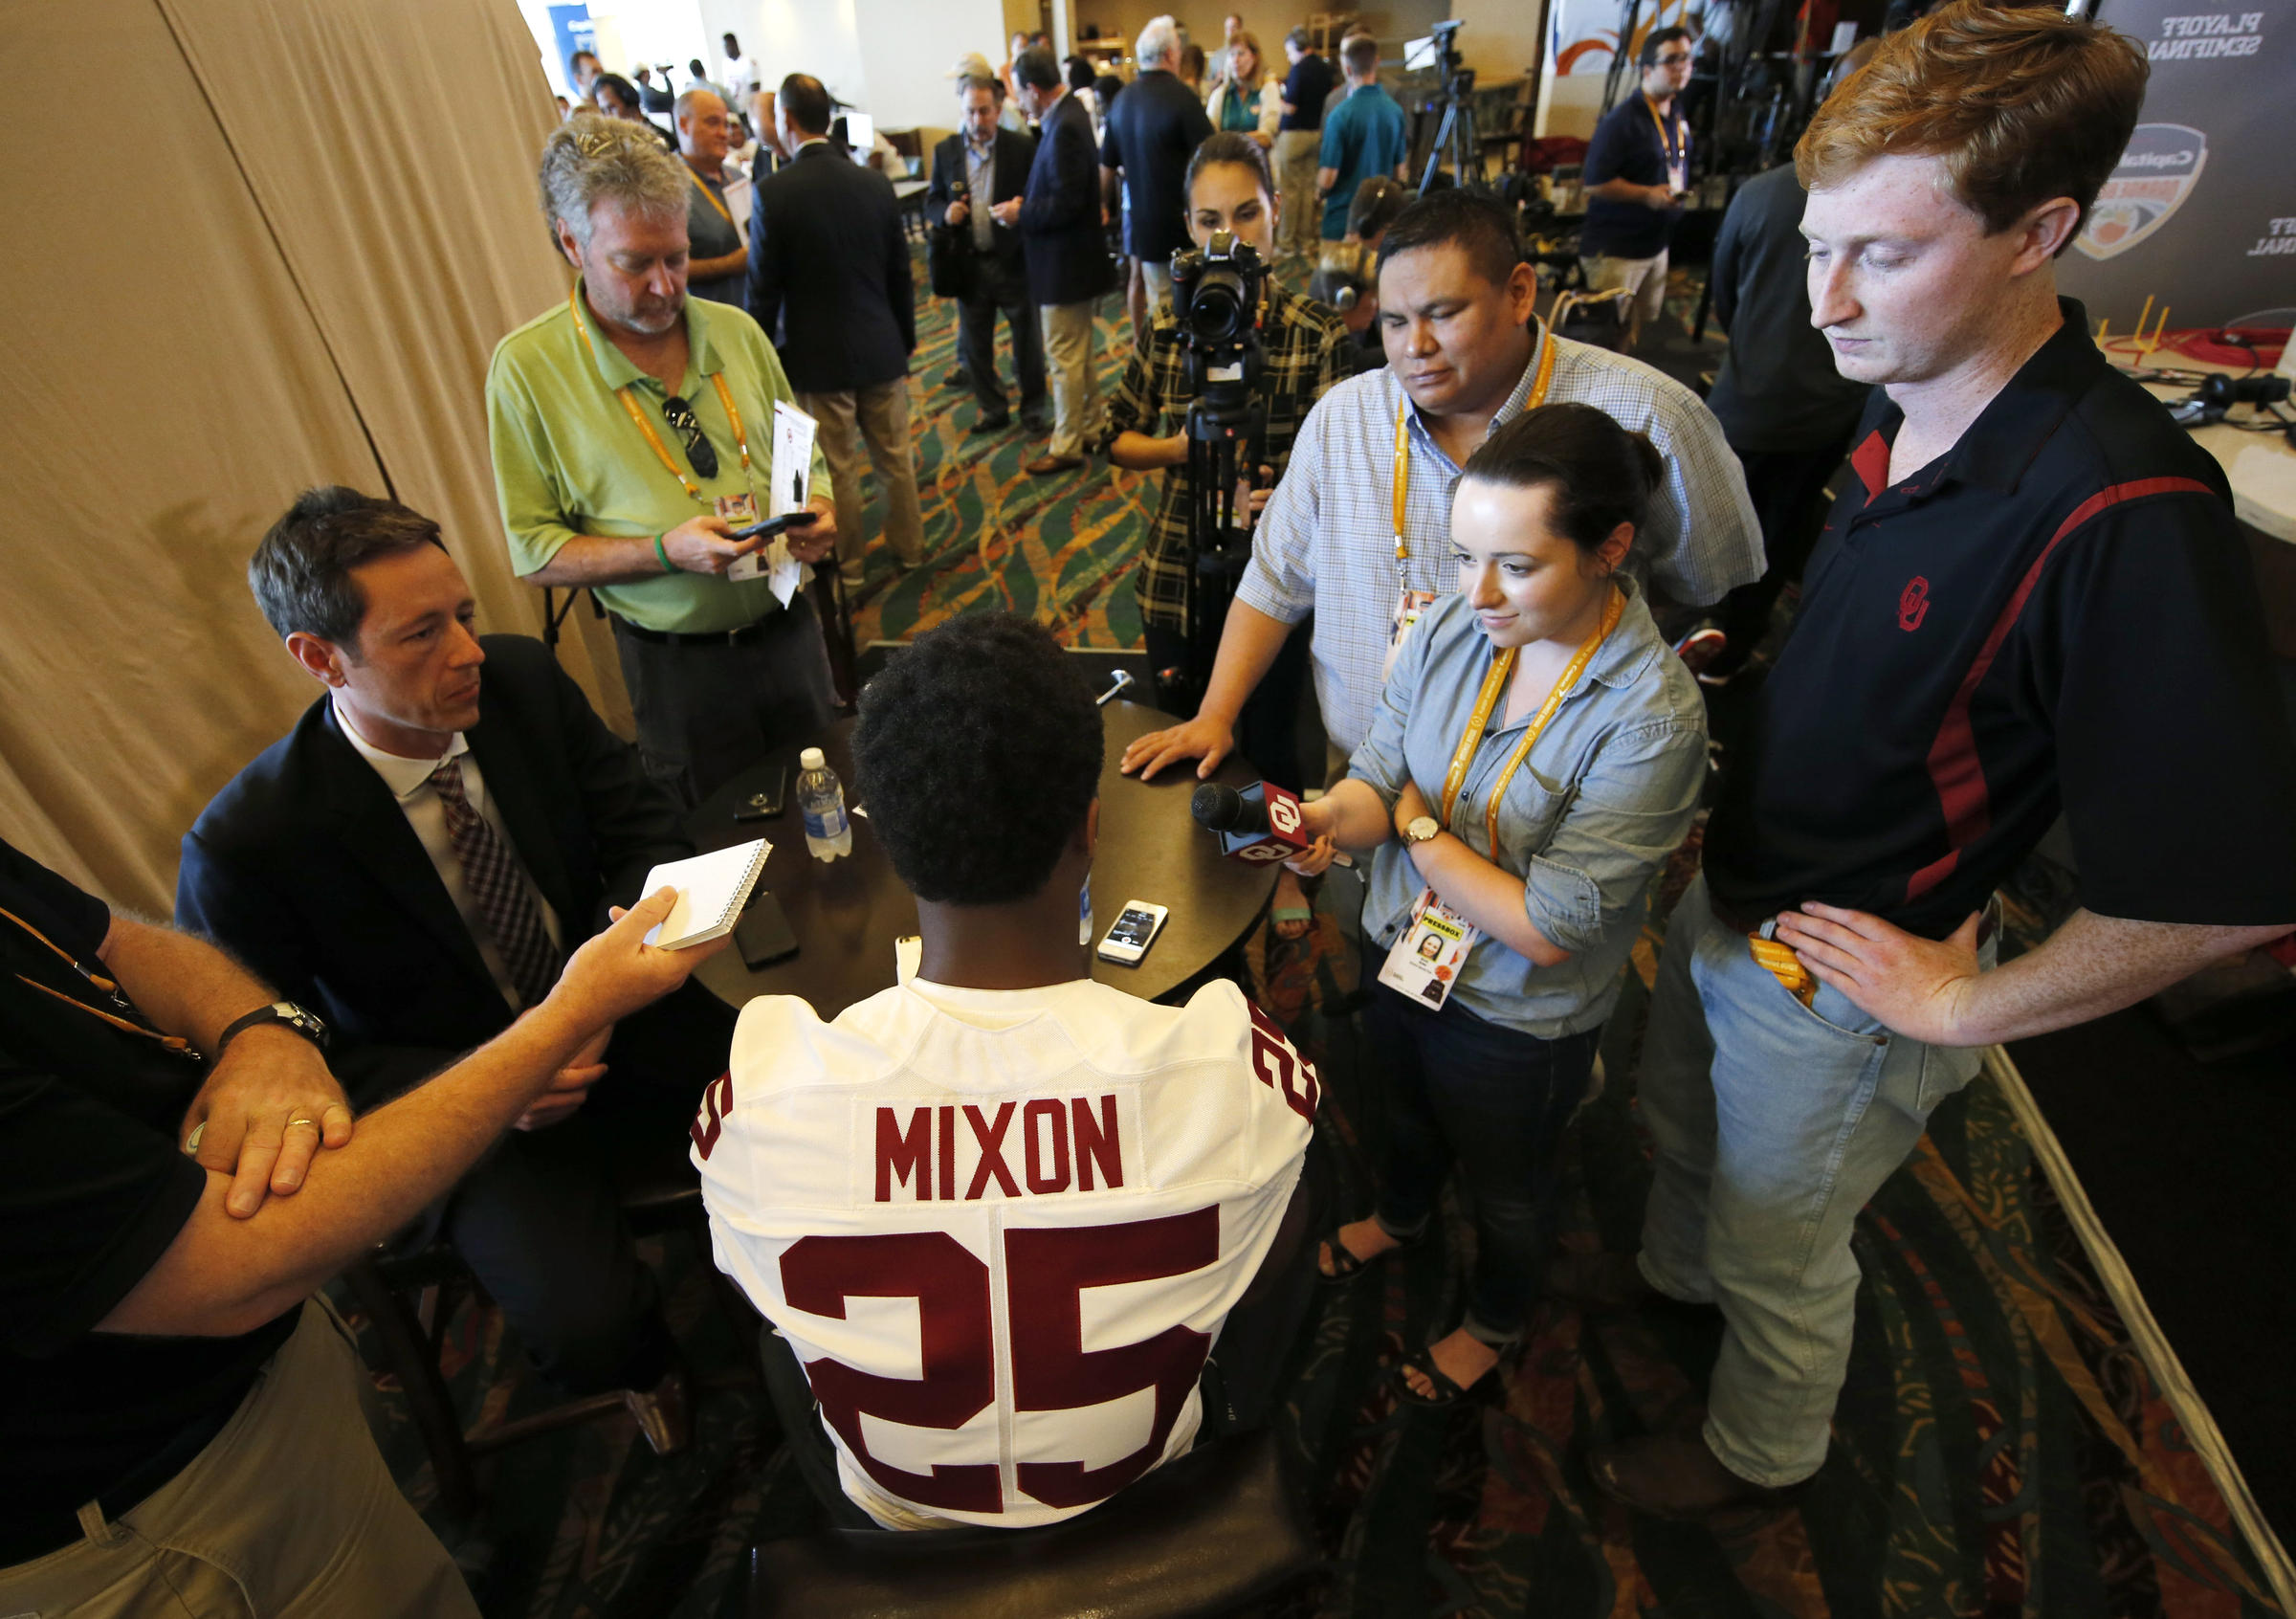 Joe Mixon publicly apologizes for 2014 altercation at press conference